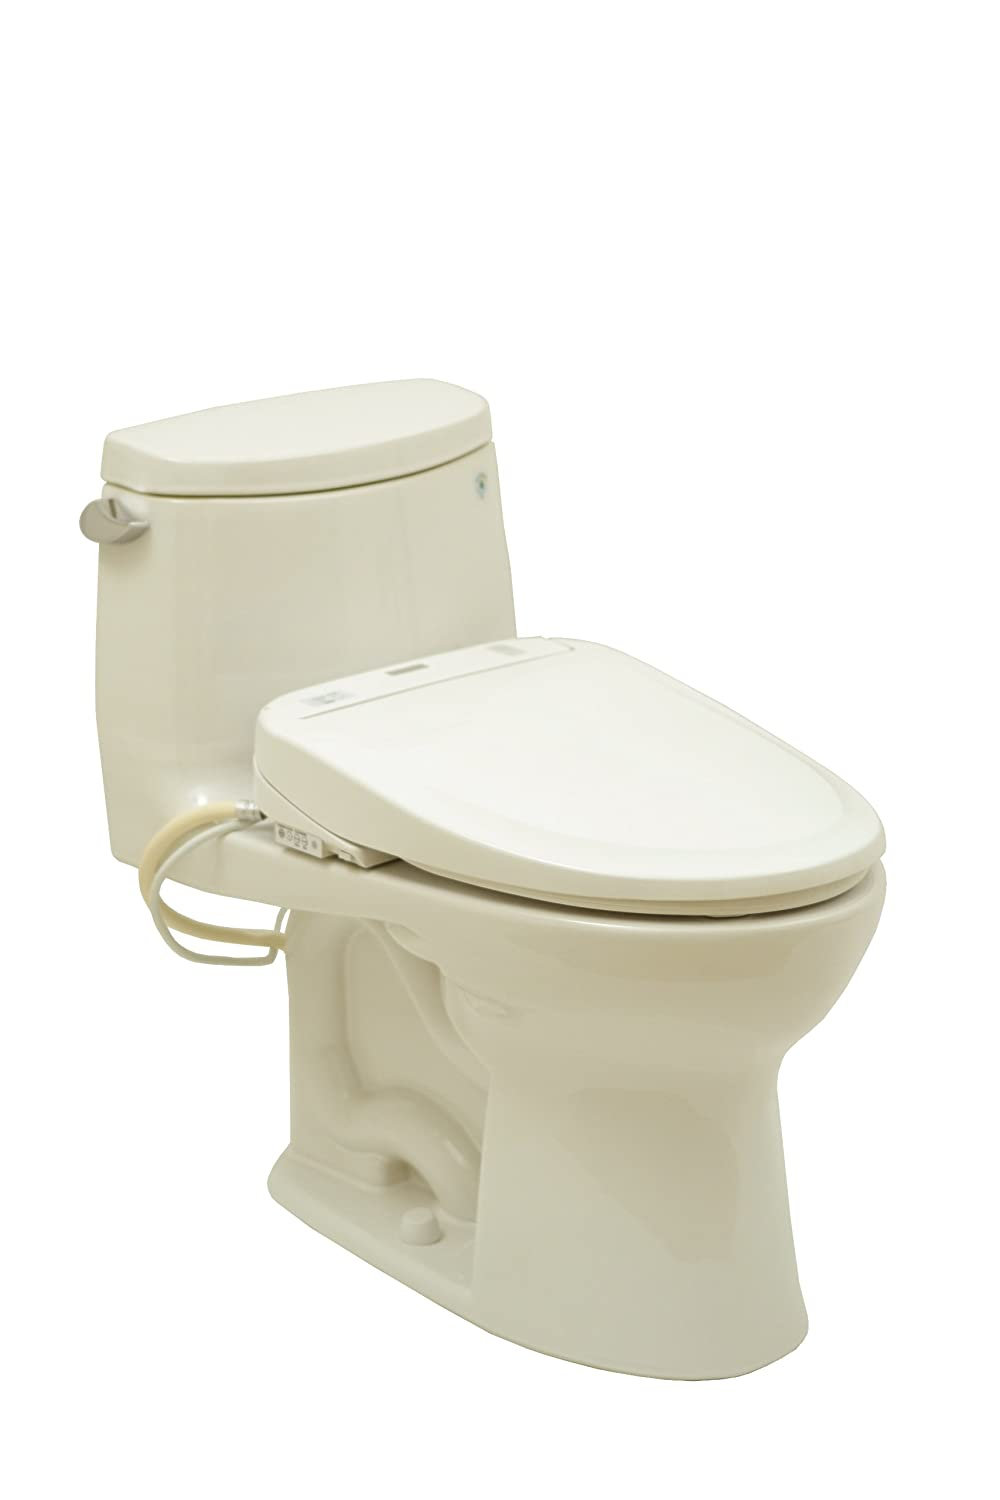 high quality toto ms854114sl sw574 12 one piece toilet and washlet combination sedona beige. Black Bedroom Furniture Sets. Home Design Ideas